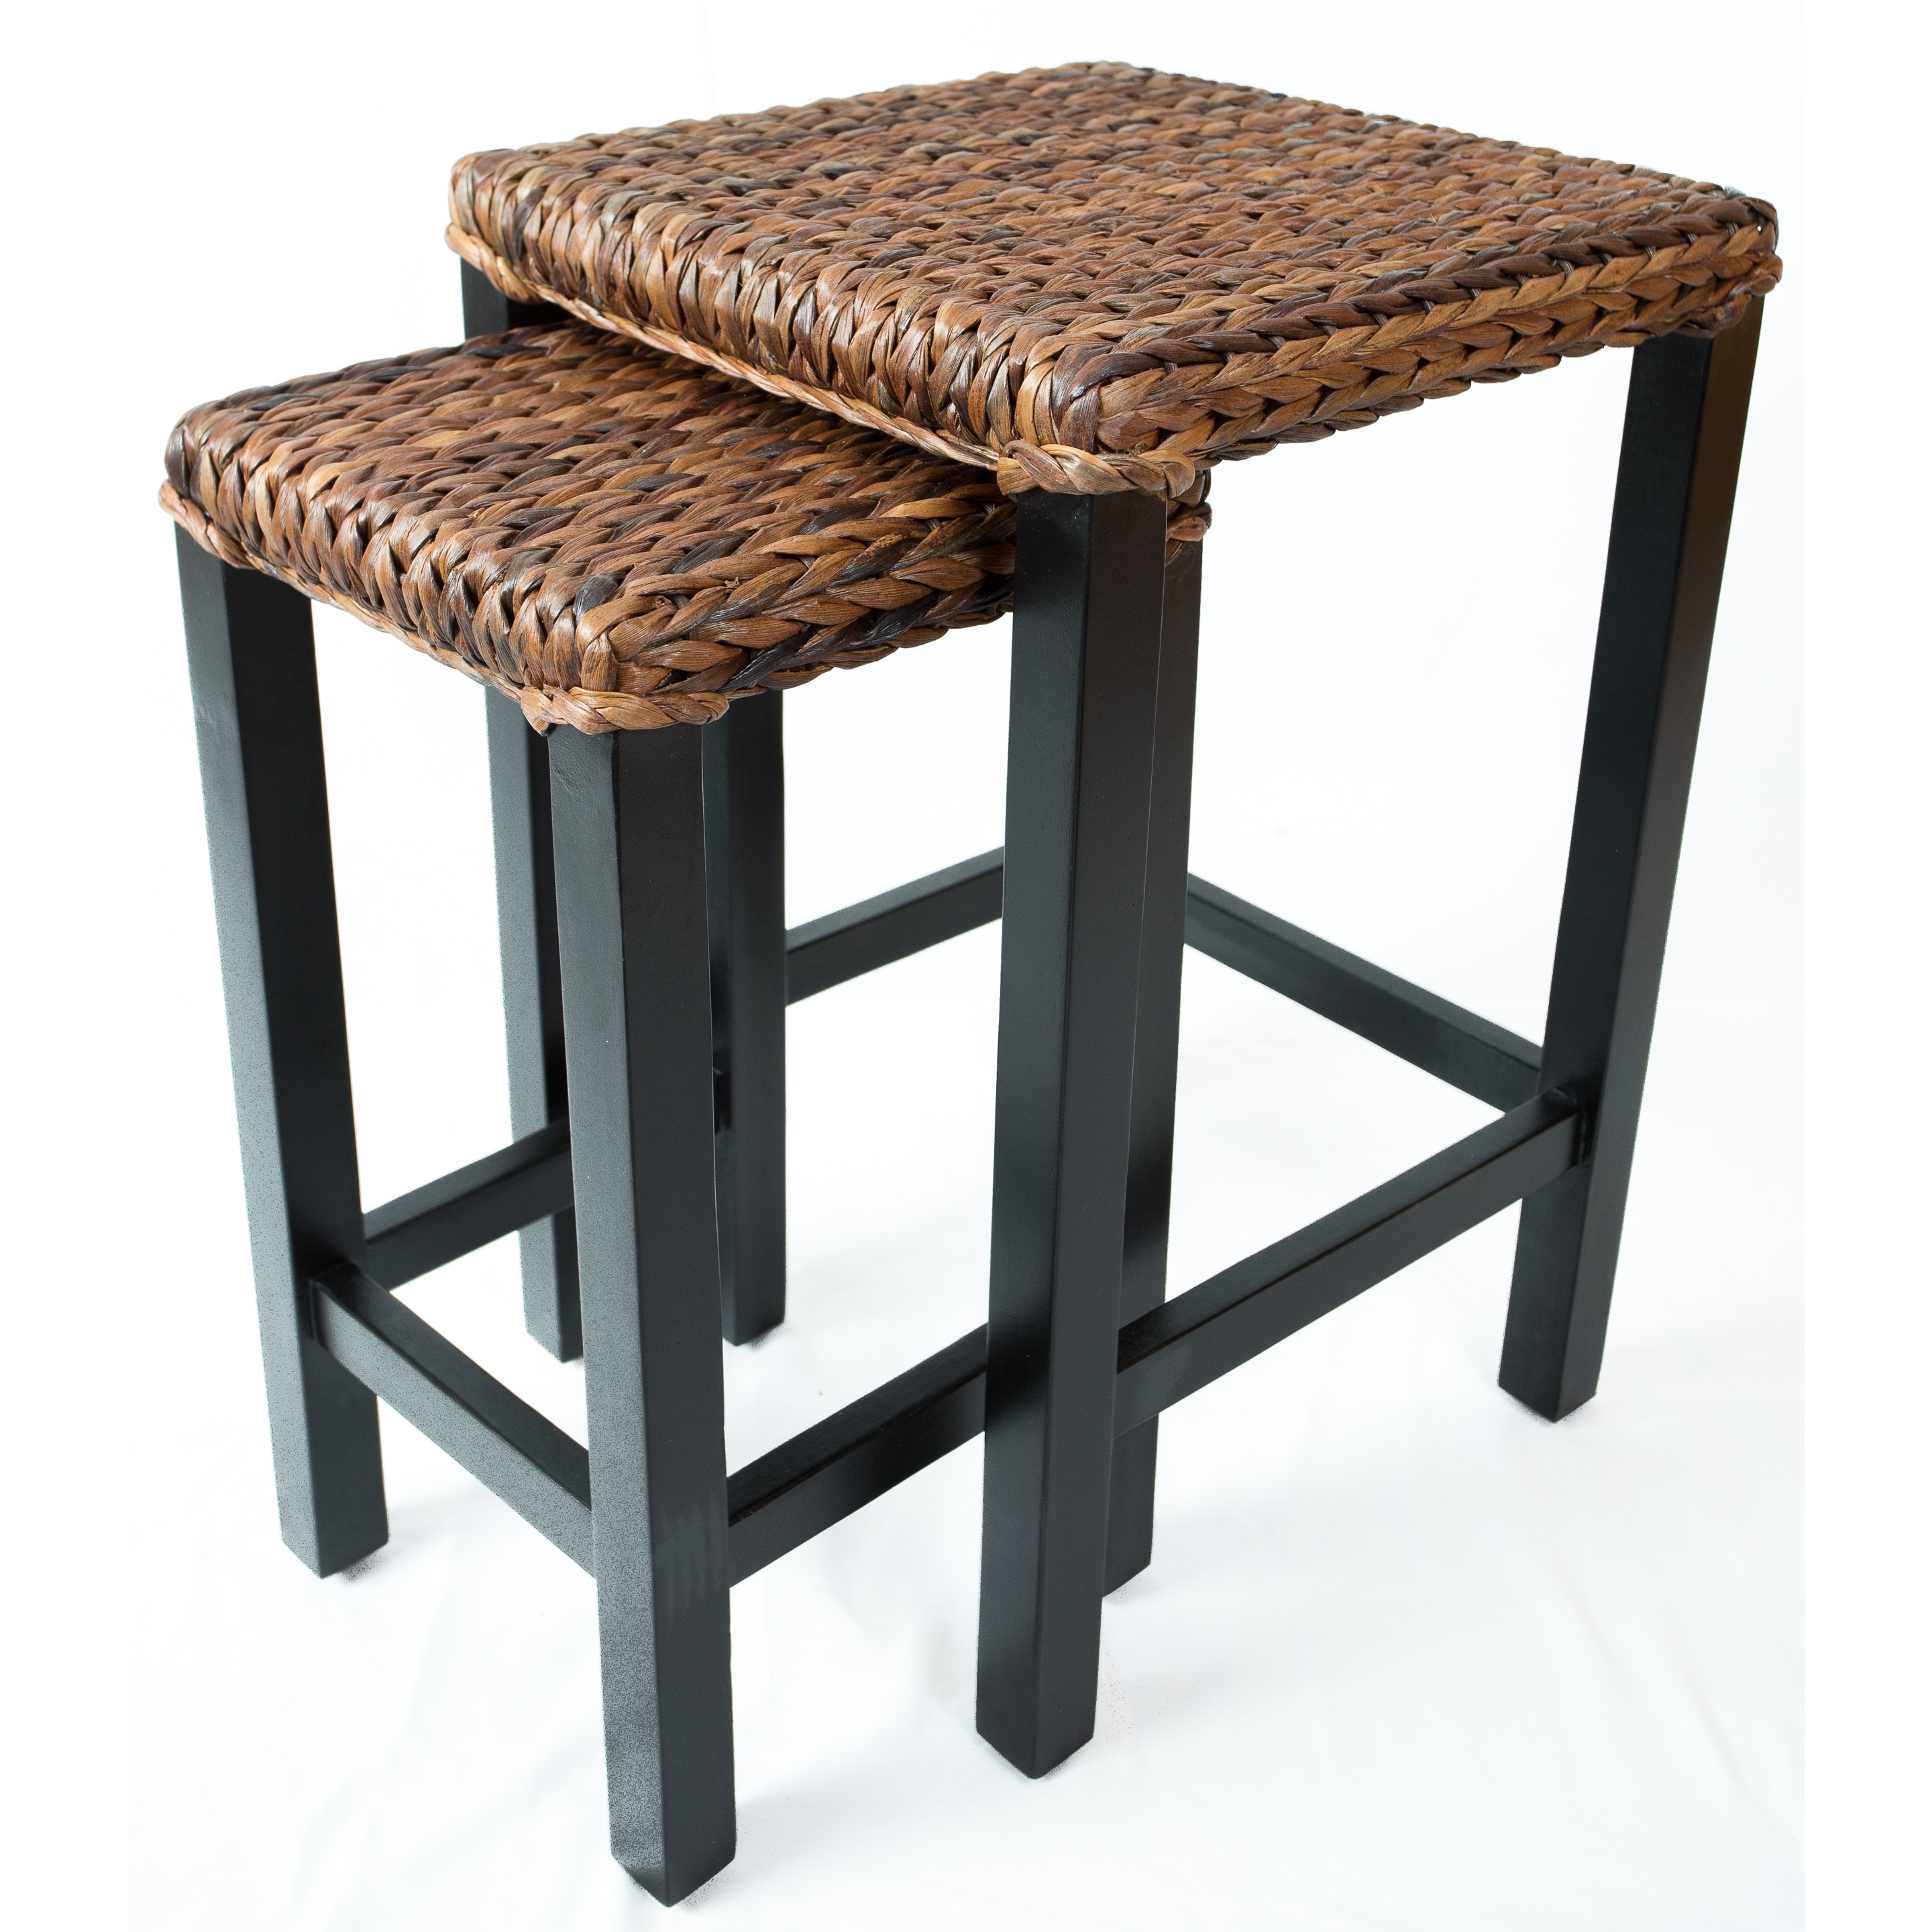 Nesting Tables Living Room Birdrock Home 3 Pc Abaca Nesting Tables Accent Side Table Hand Woven Espresso Bed Sofa Snack End Table Home Elektroelement Com Mk